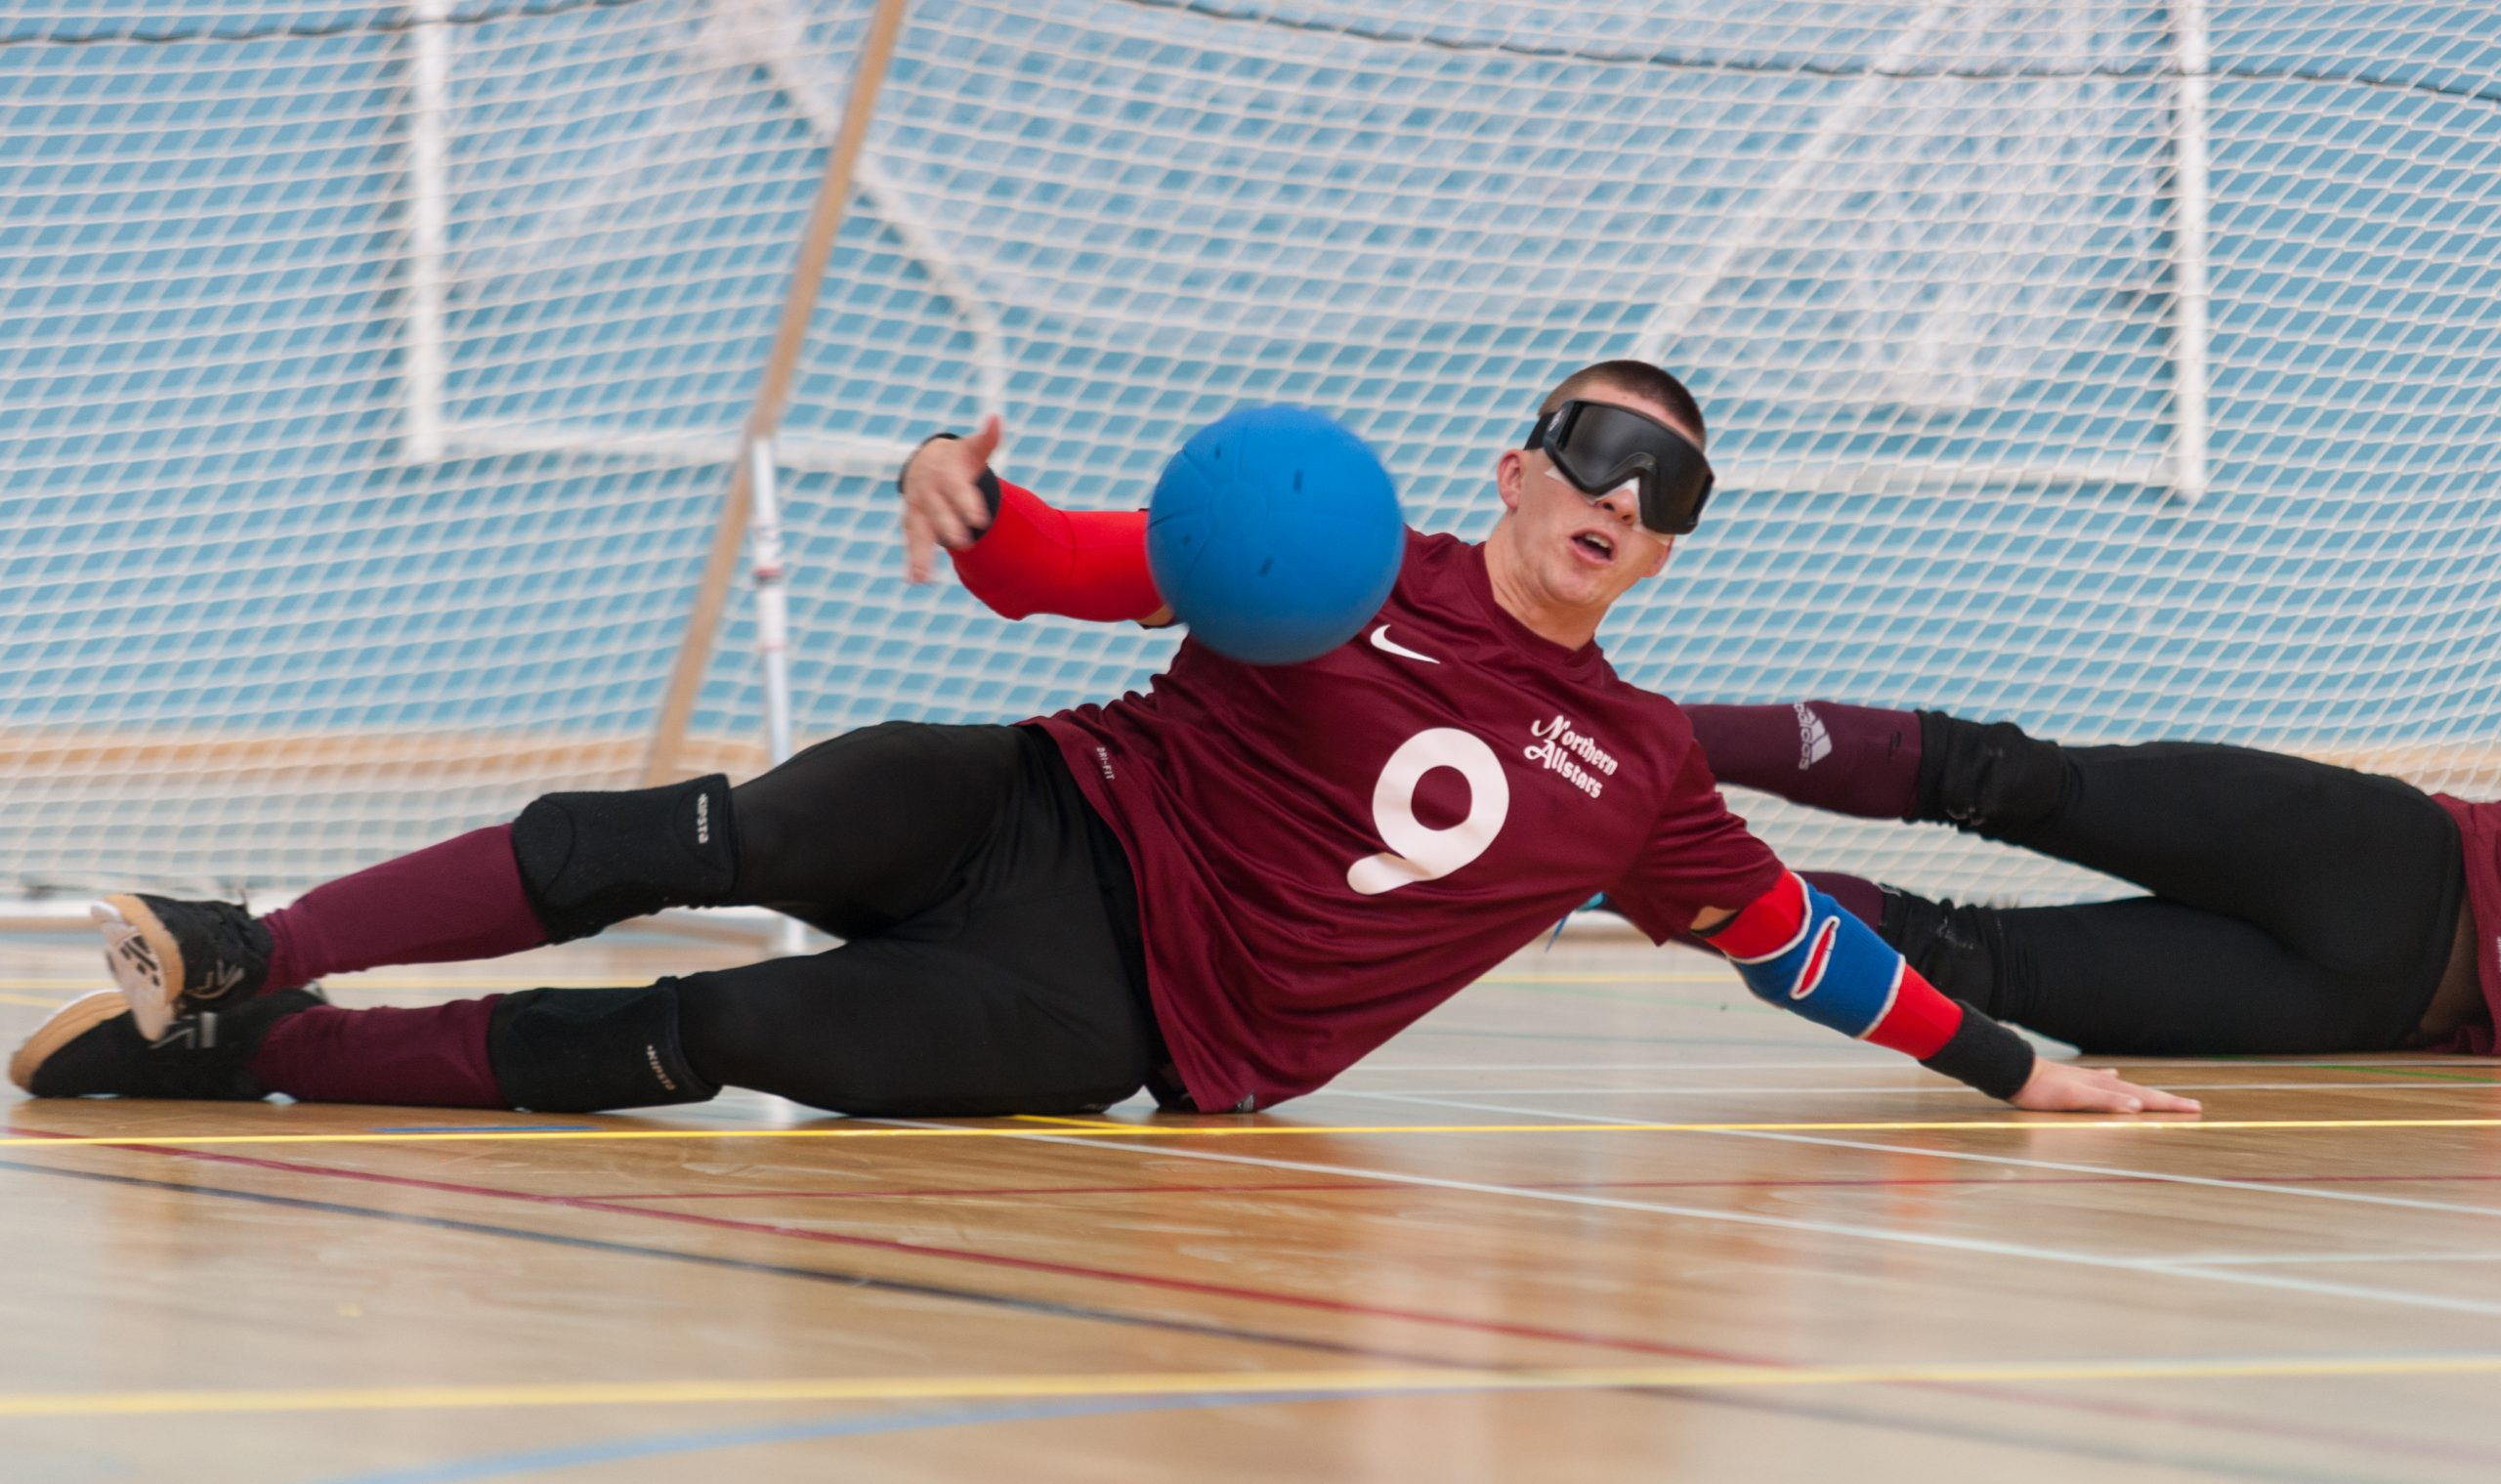 Action shot of Matt Loftus mid-save whilst playing for the Northern Allstars